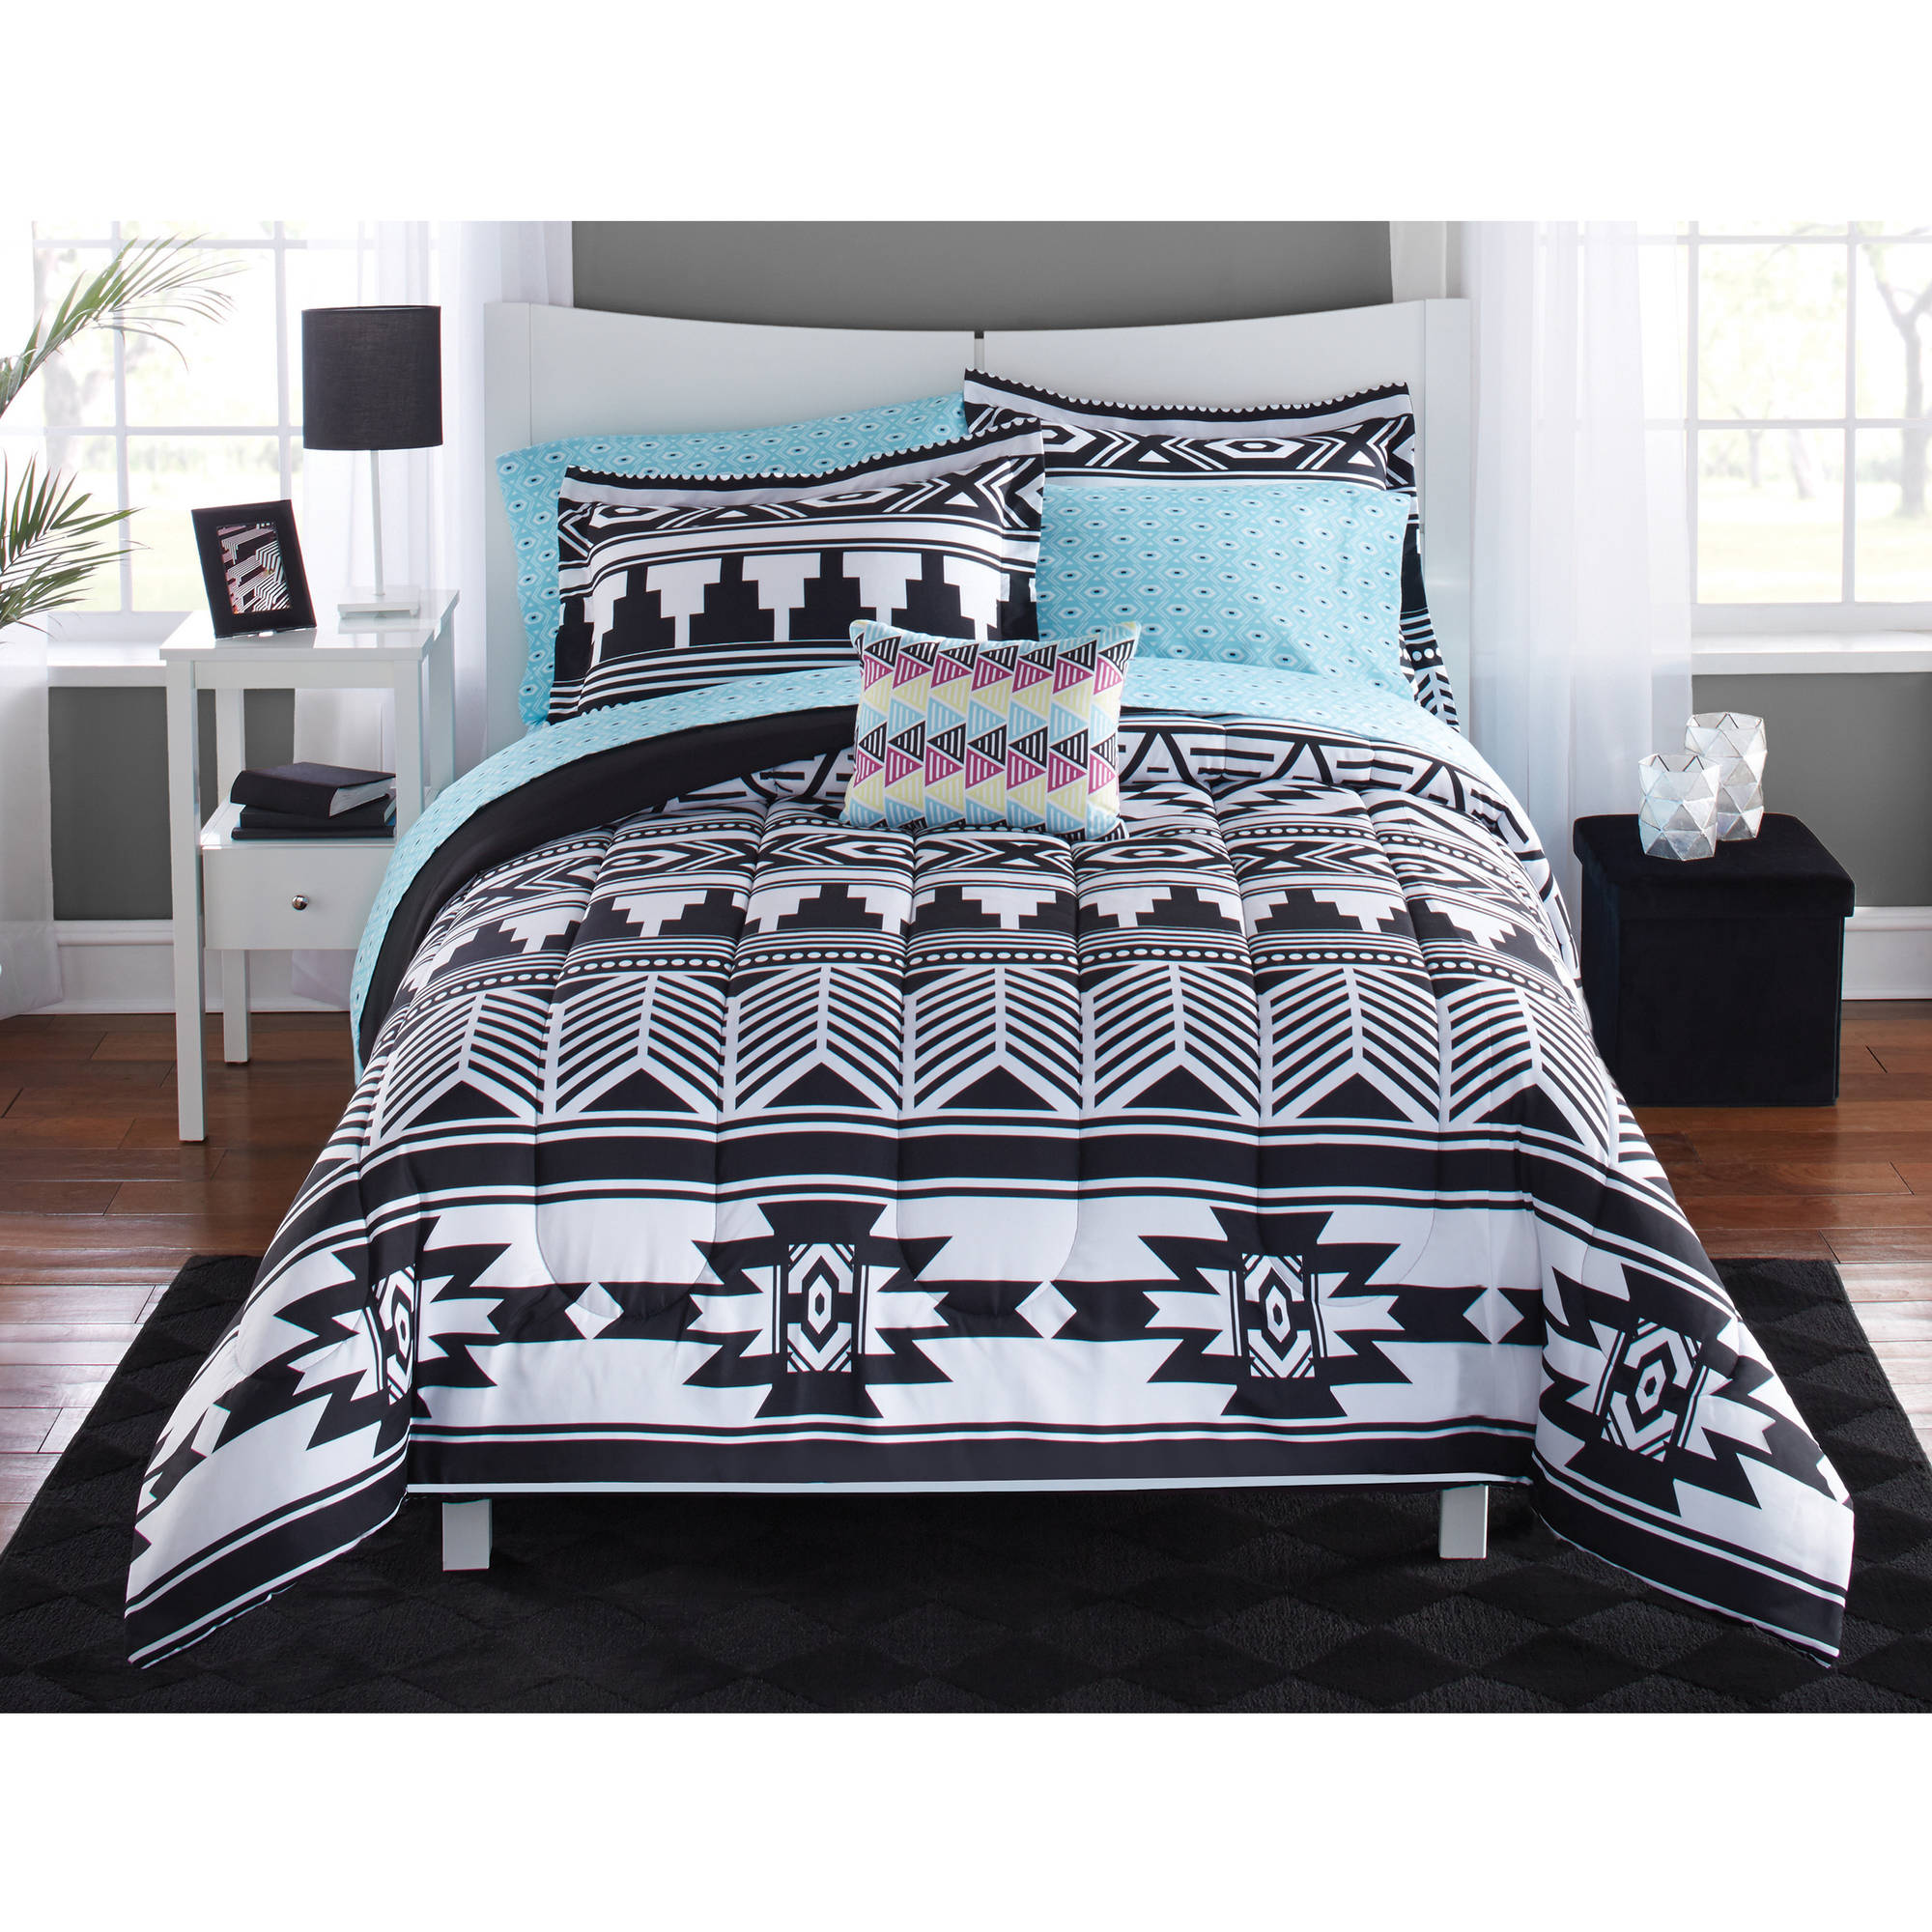 mainstays tribal black and white bed in a bag bedding set walmartcom